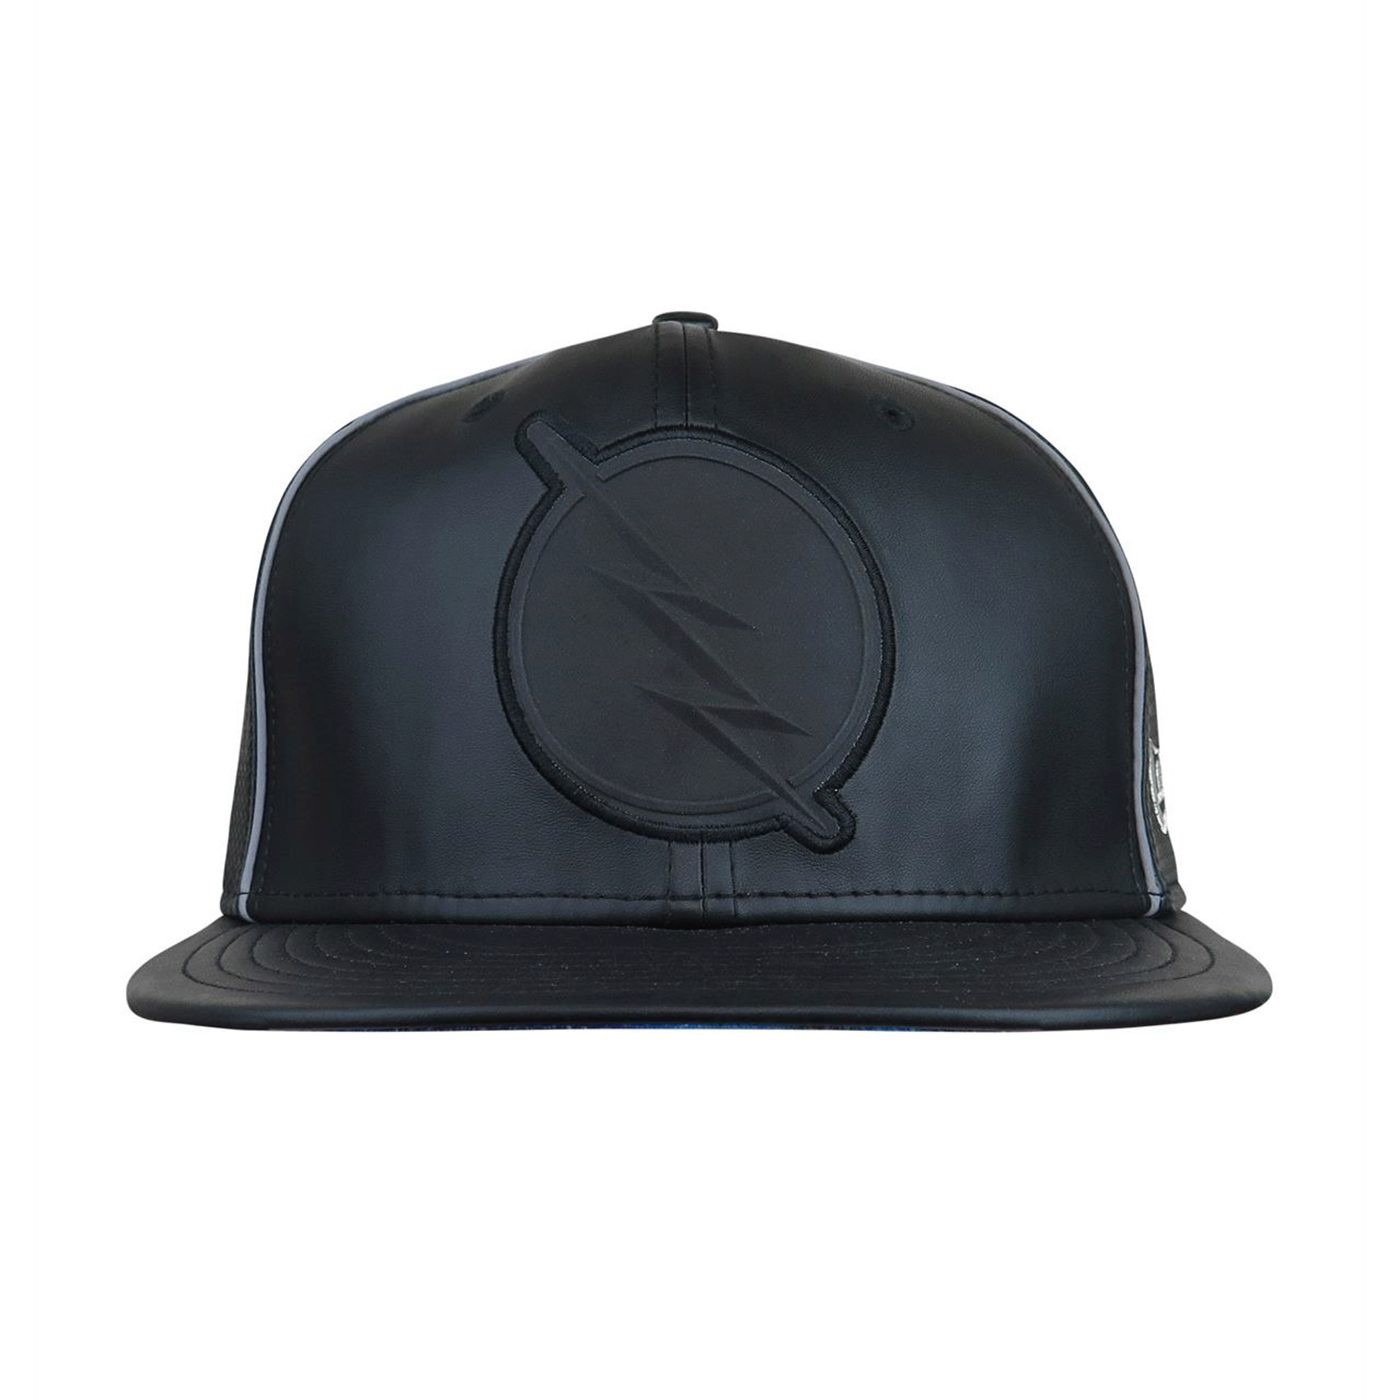 Flash Zoom Reflective Armor 9Fifty Snapback Hat